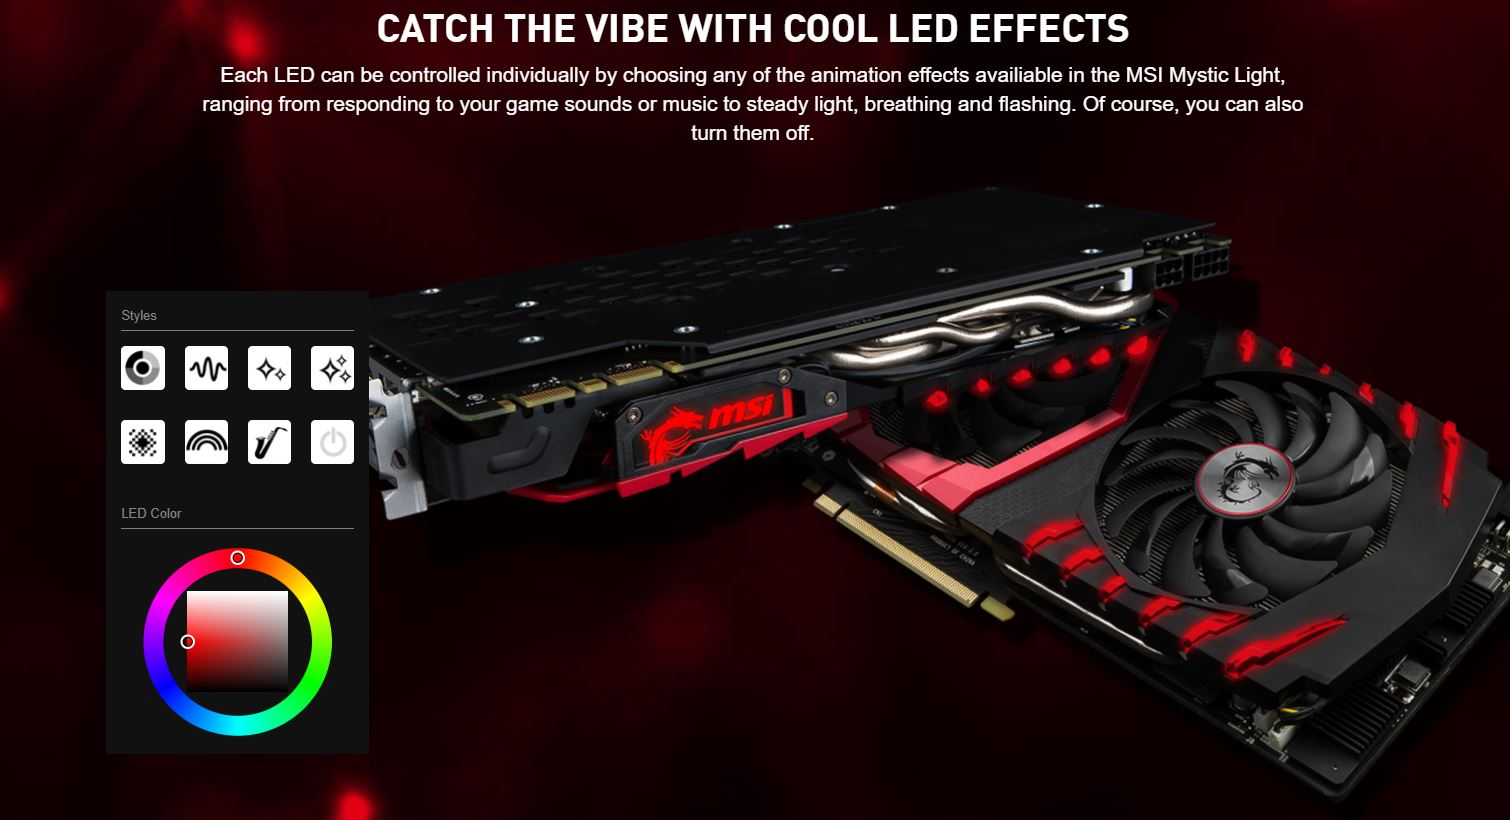 MSI GeForce GTX 1070 Ti GAMING Graphics Card Review